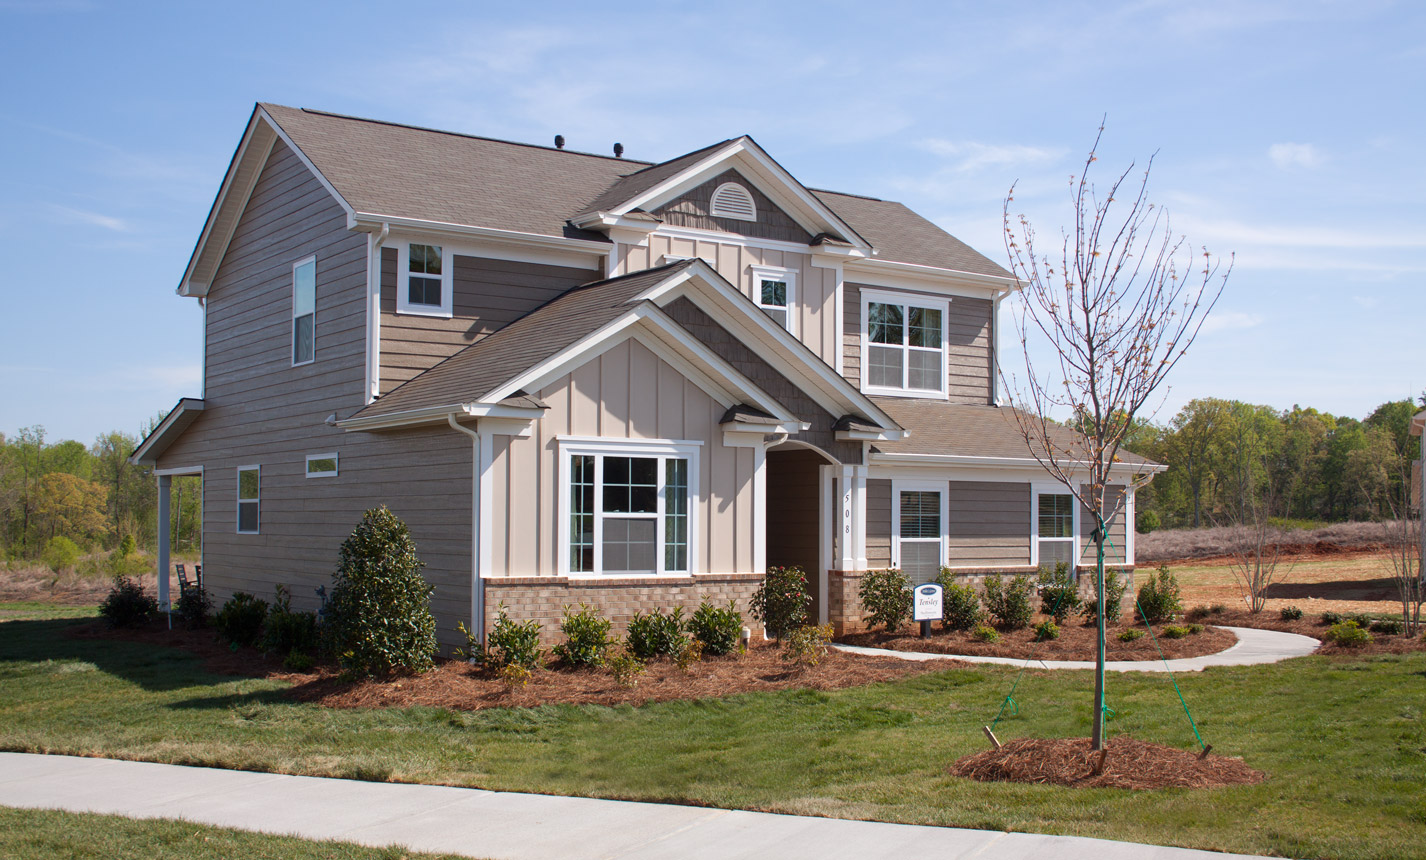 Shea Homes Of Charlotte Hosted Open House And Raised Food For Local Charity